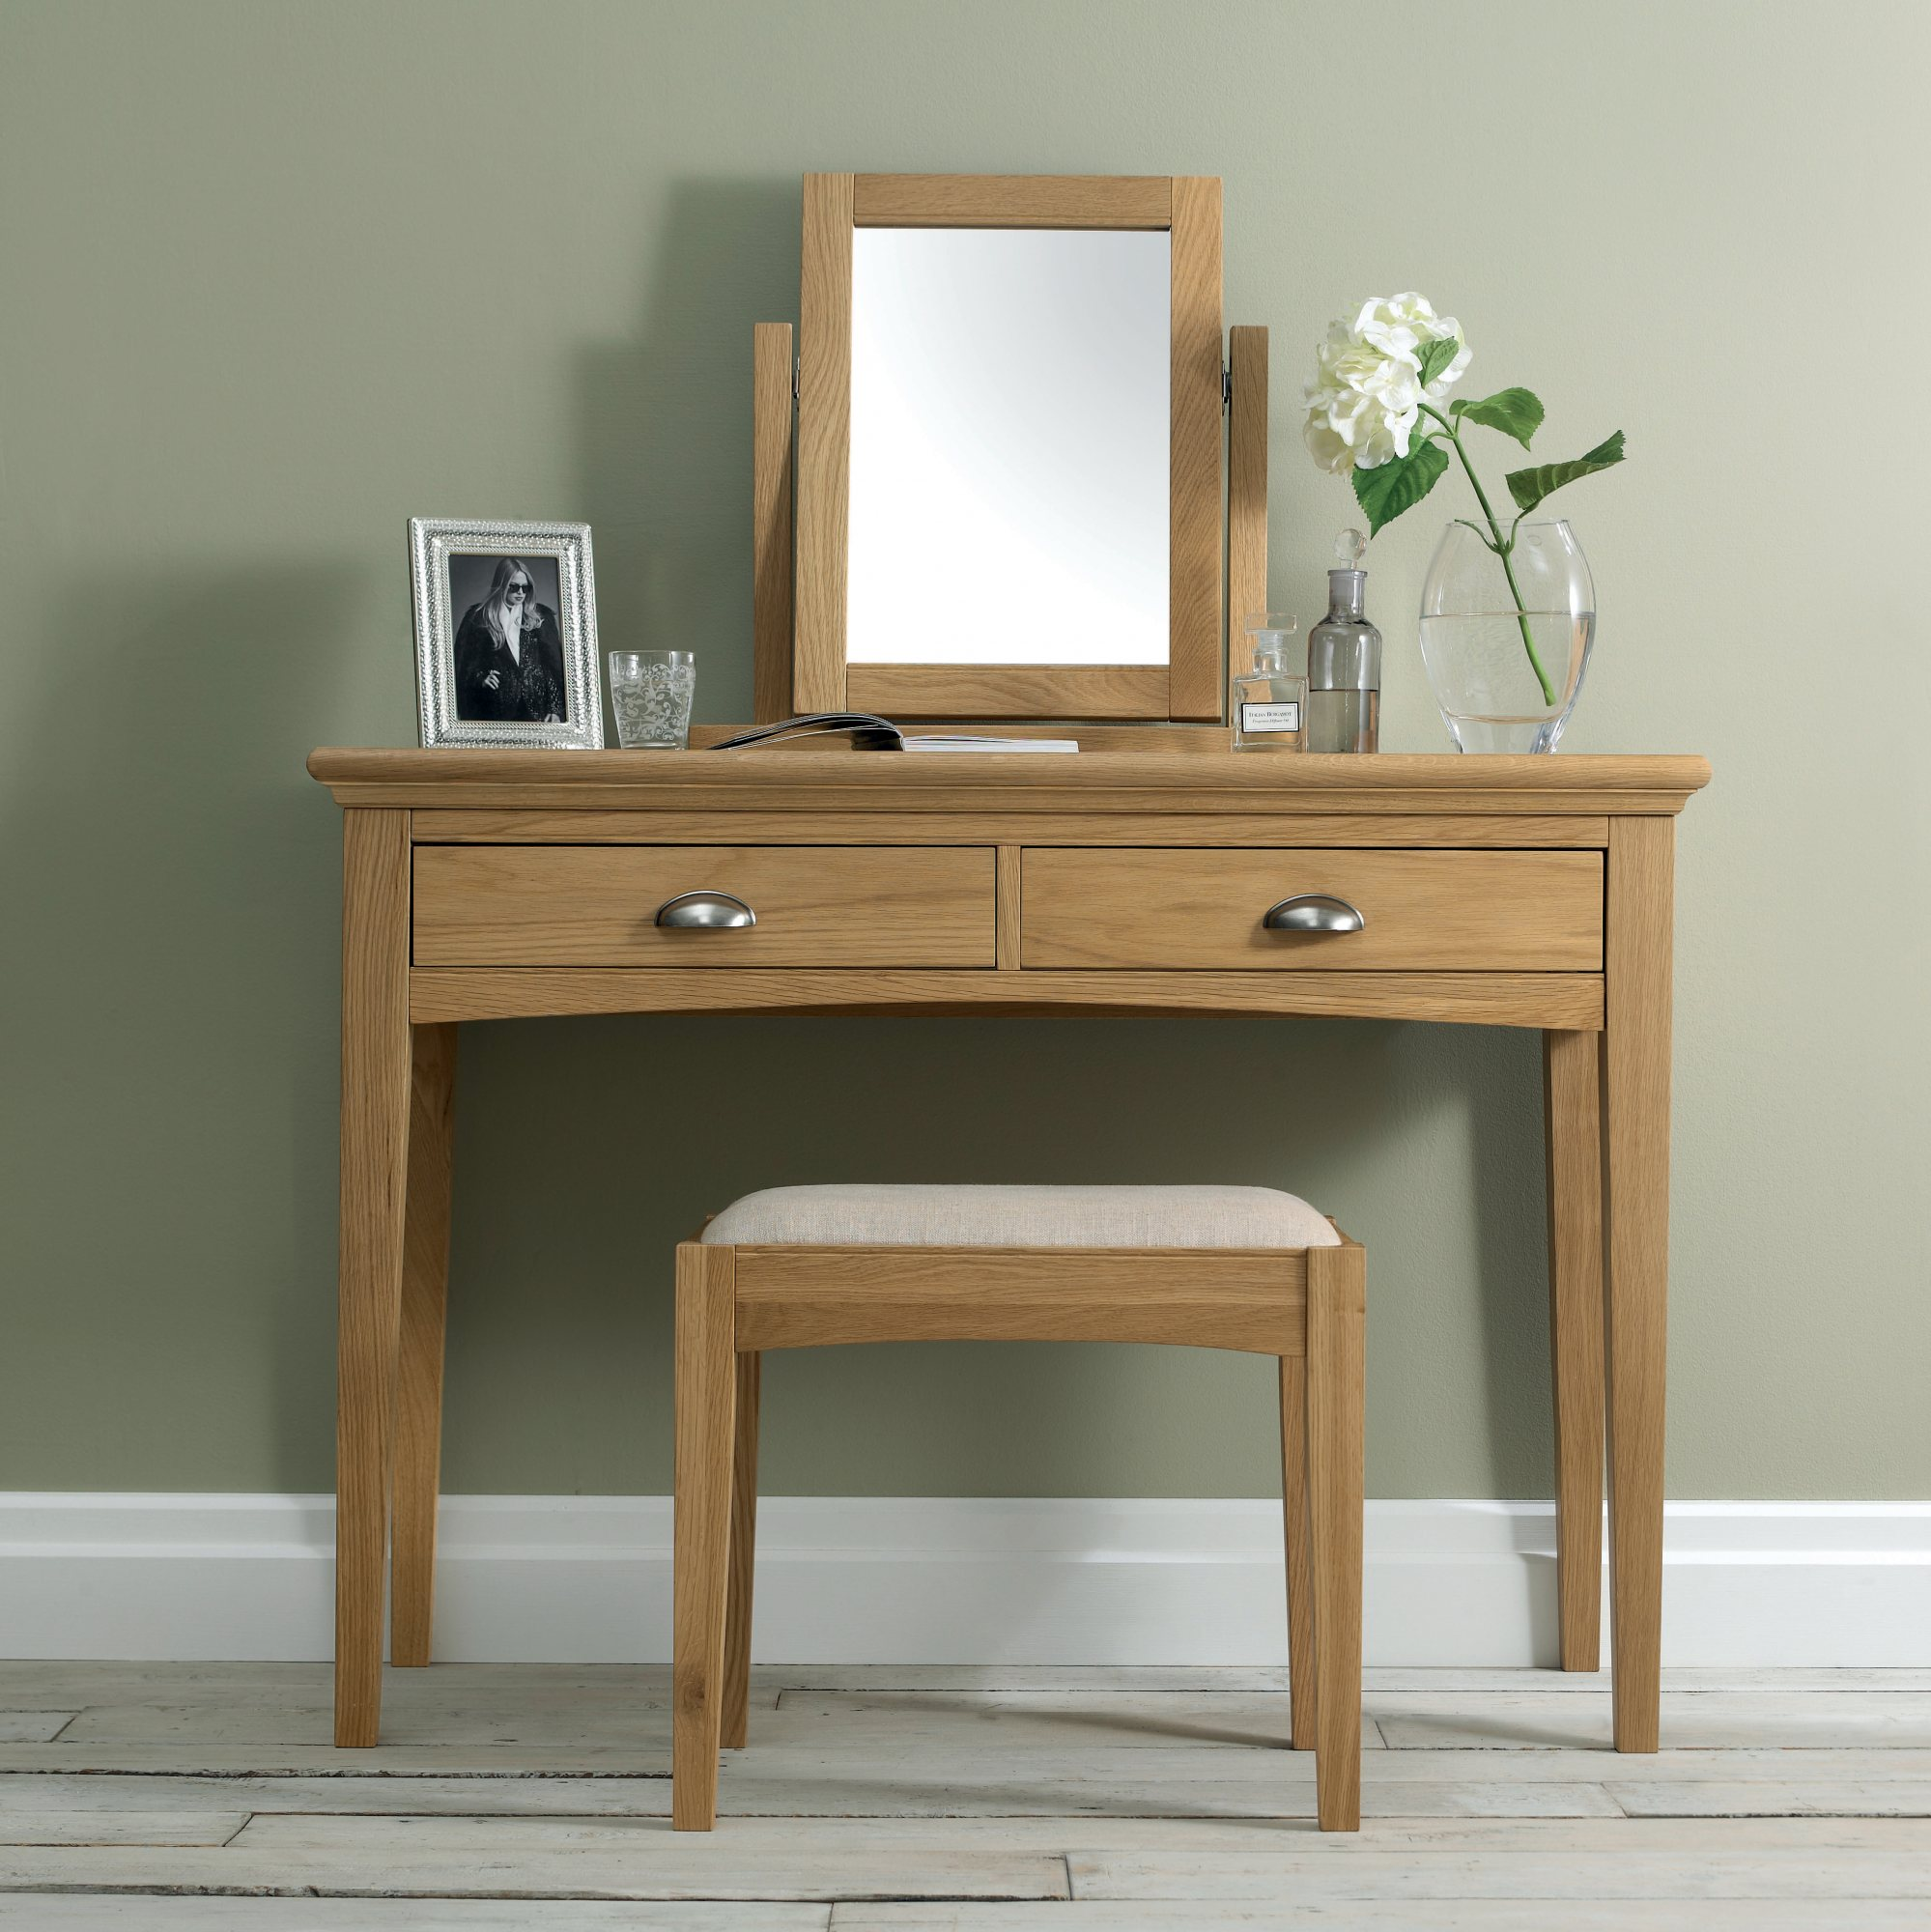 KYRA OAK BEDROOM MIRROR ON DRESSING TABLE